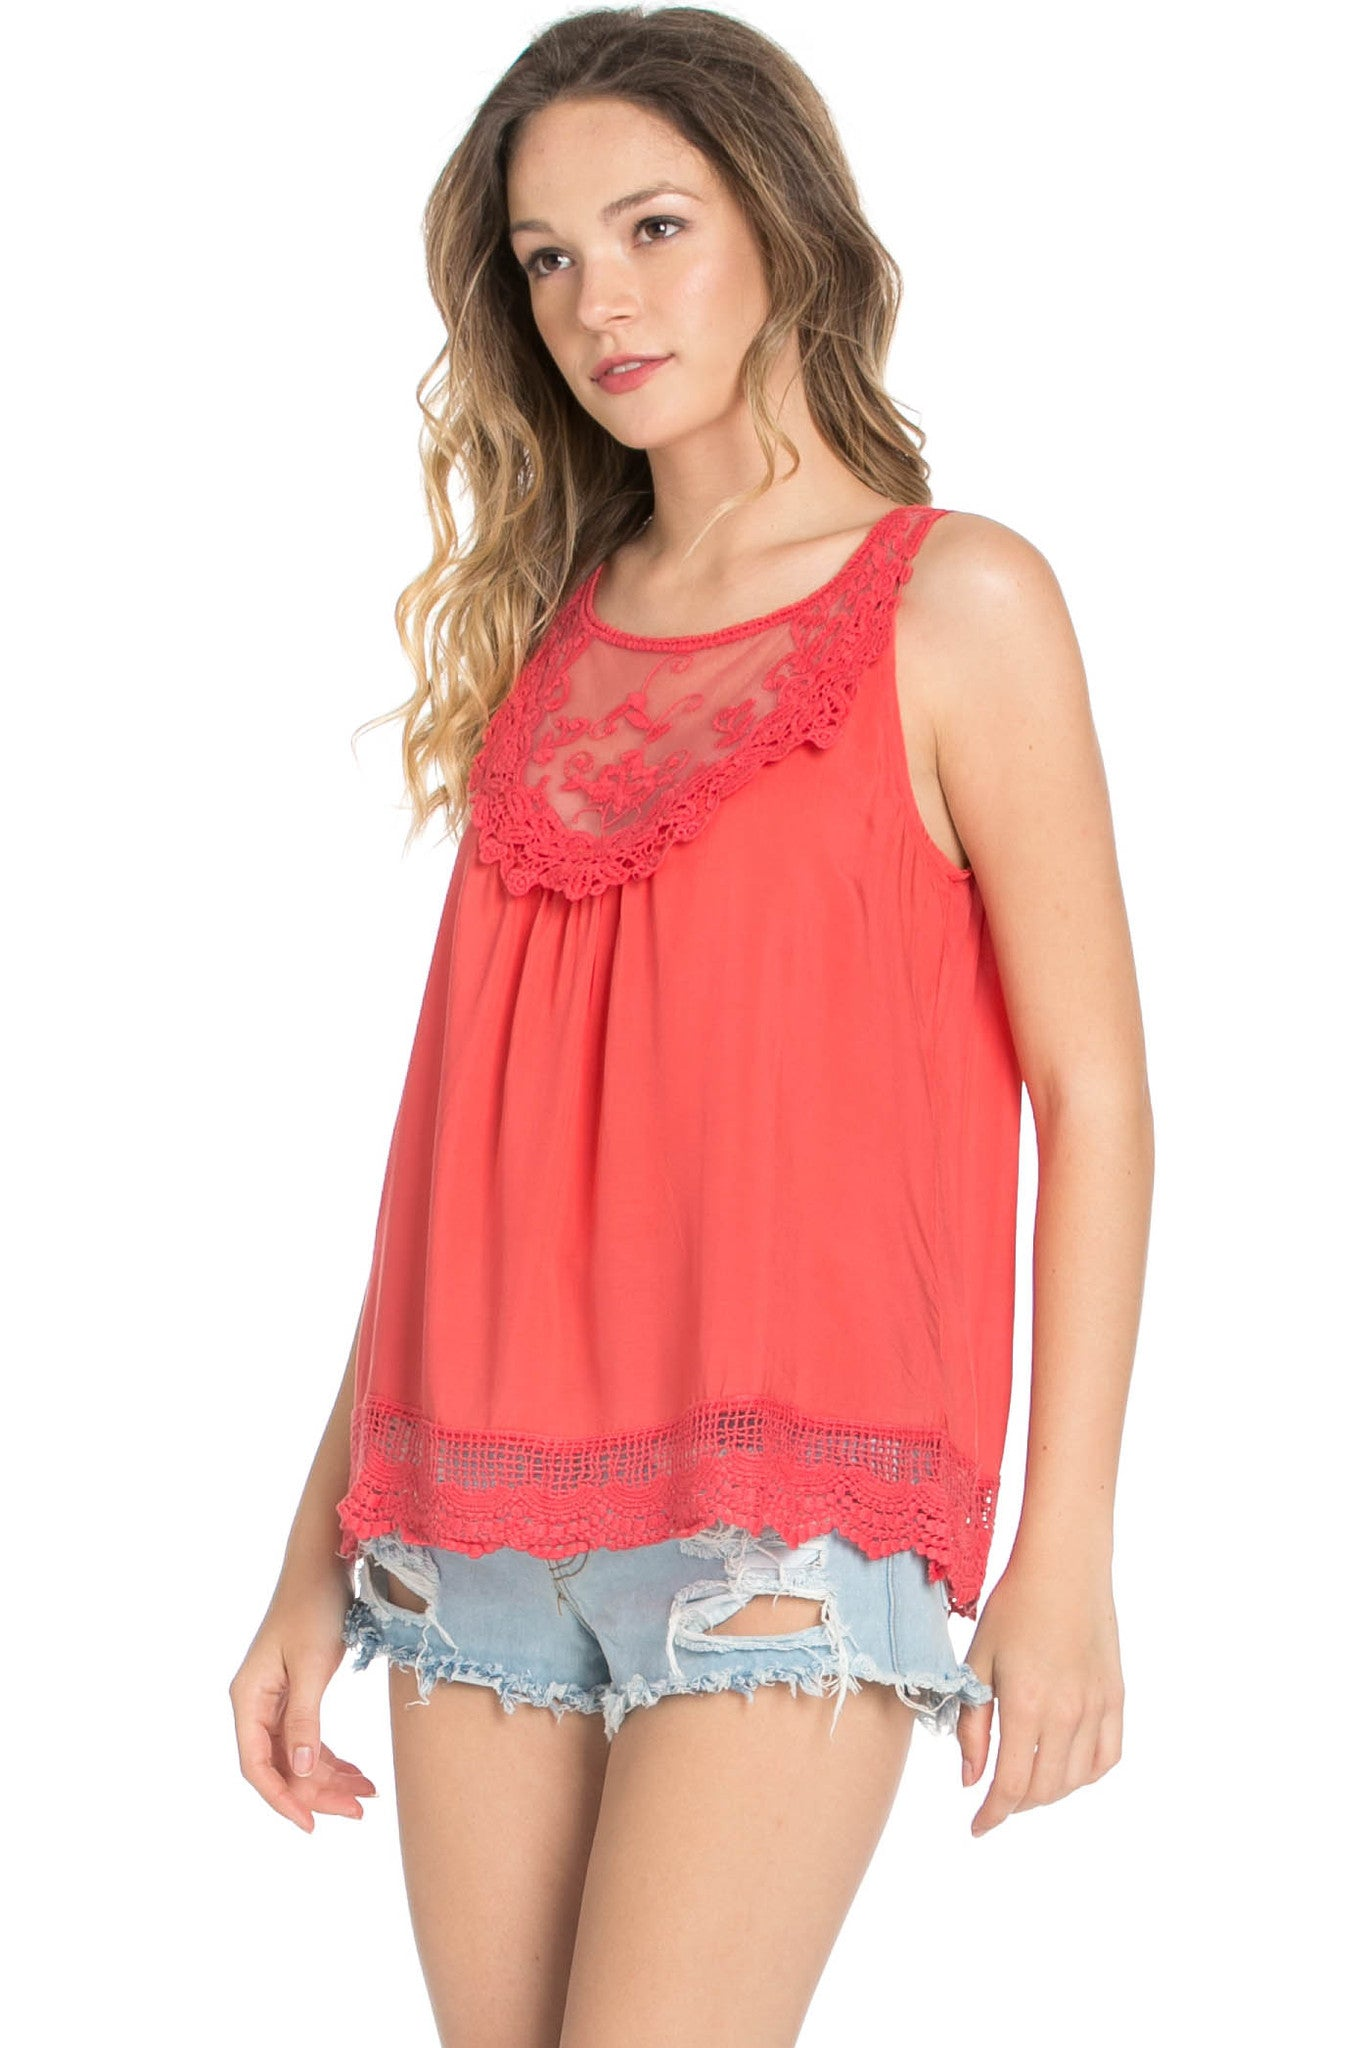 Crochets and Lace Coral Top - Tops - My Yuccie - 3